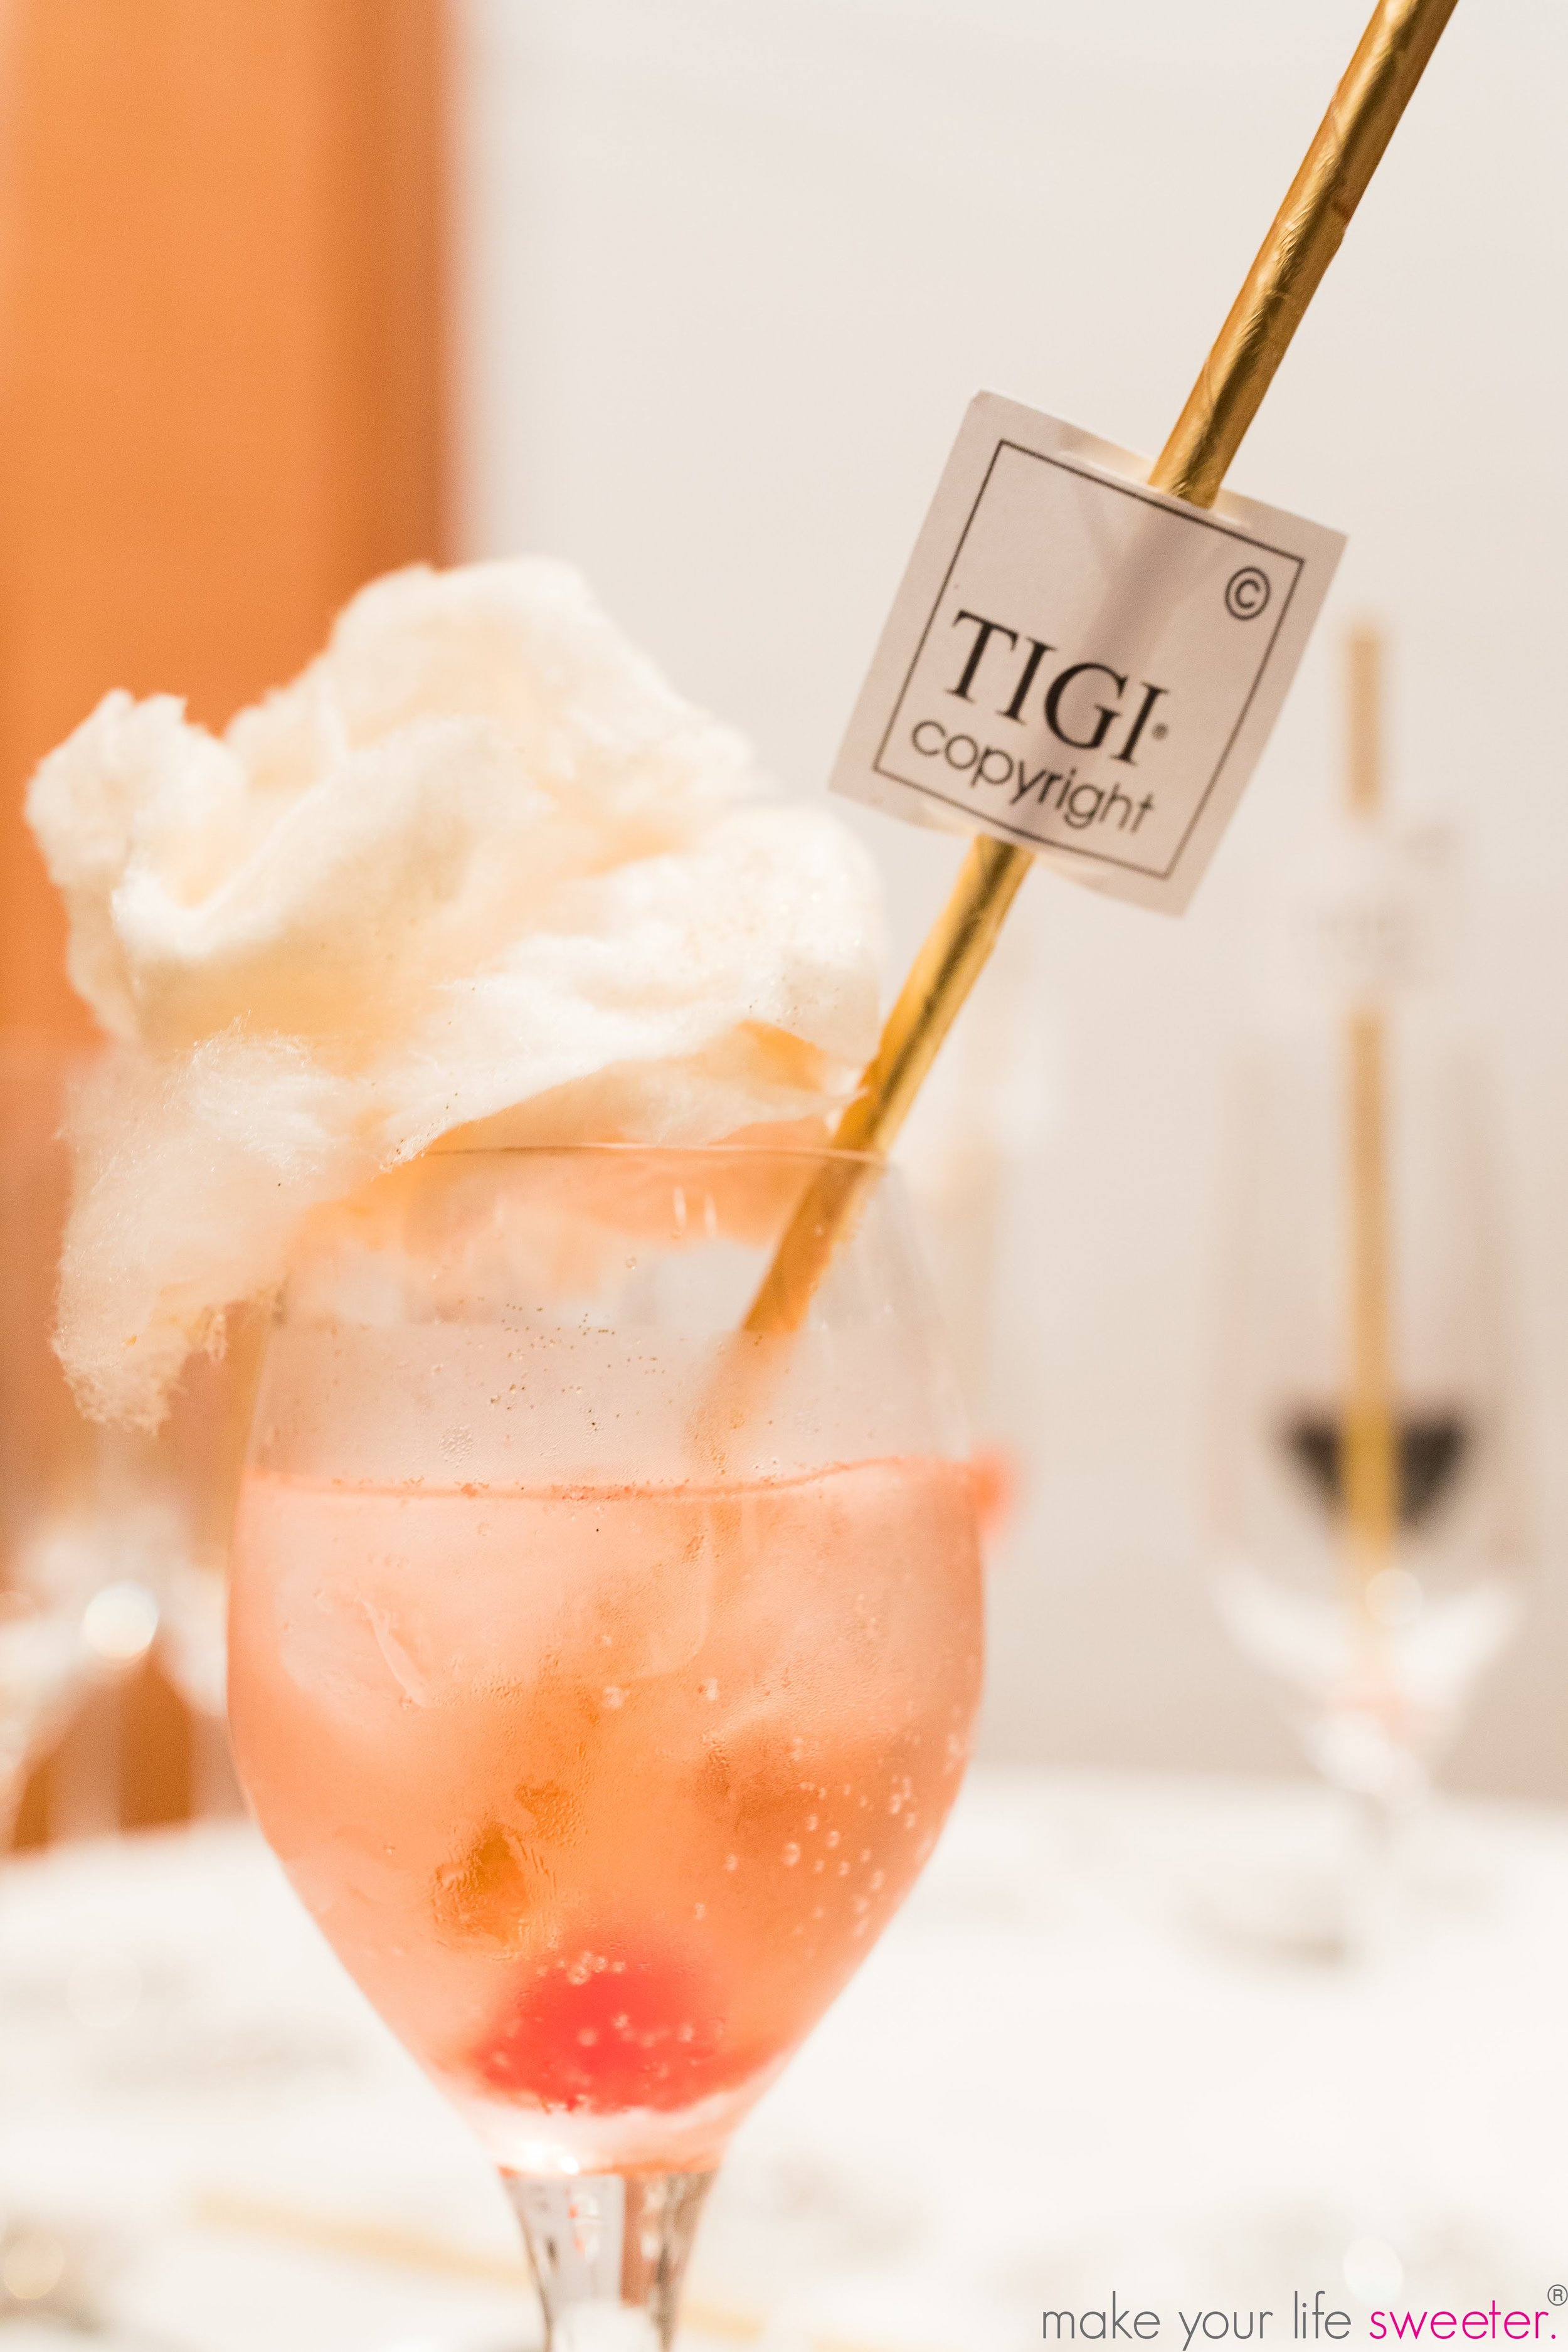 Make Your Life Sweeter Events - TIGI Copyright Event in Miami   Sugaire Organic Coton Candy Infusion Bar with Customized TIGI Hashtag Flags